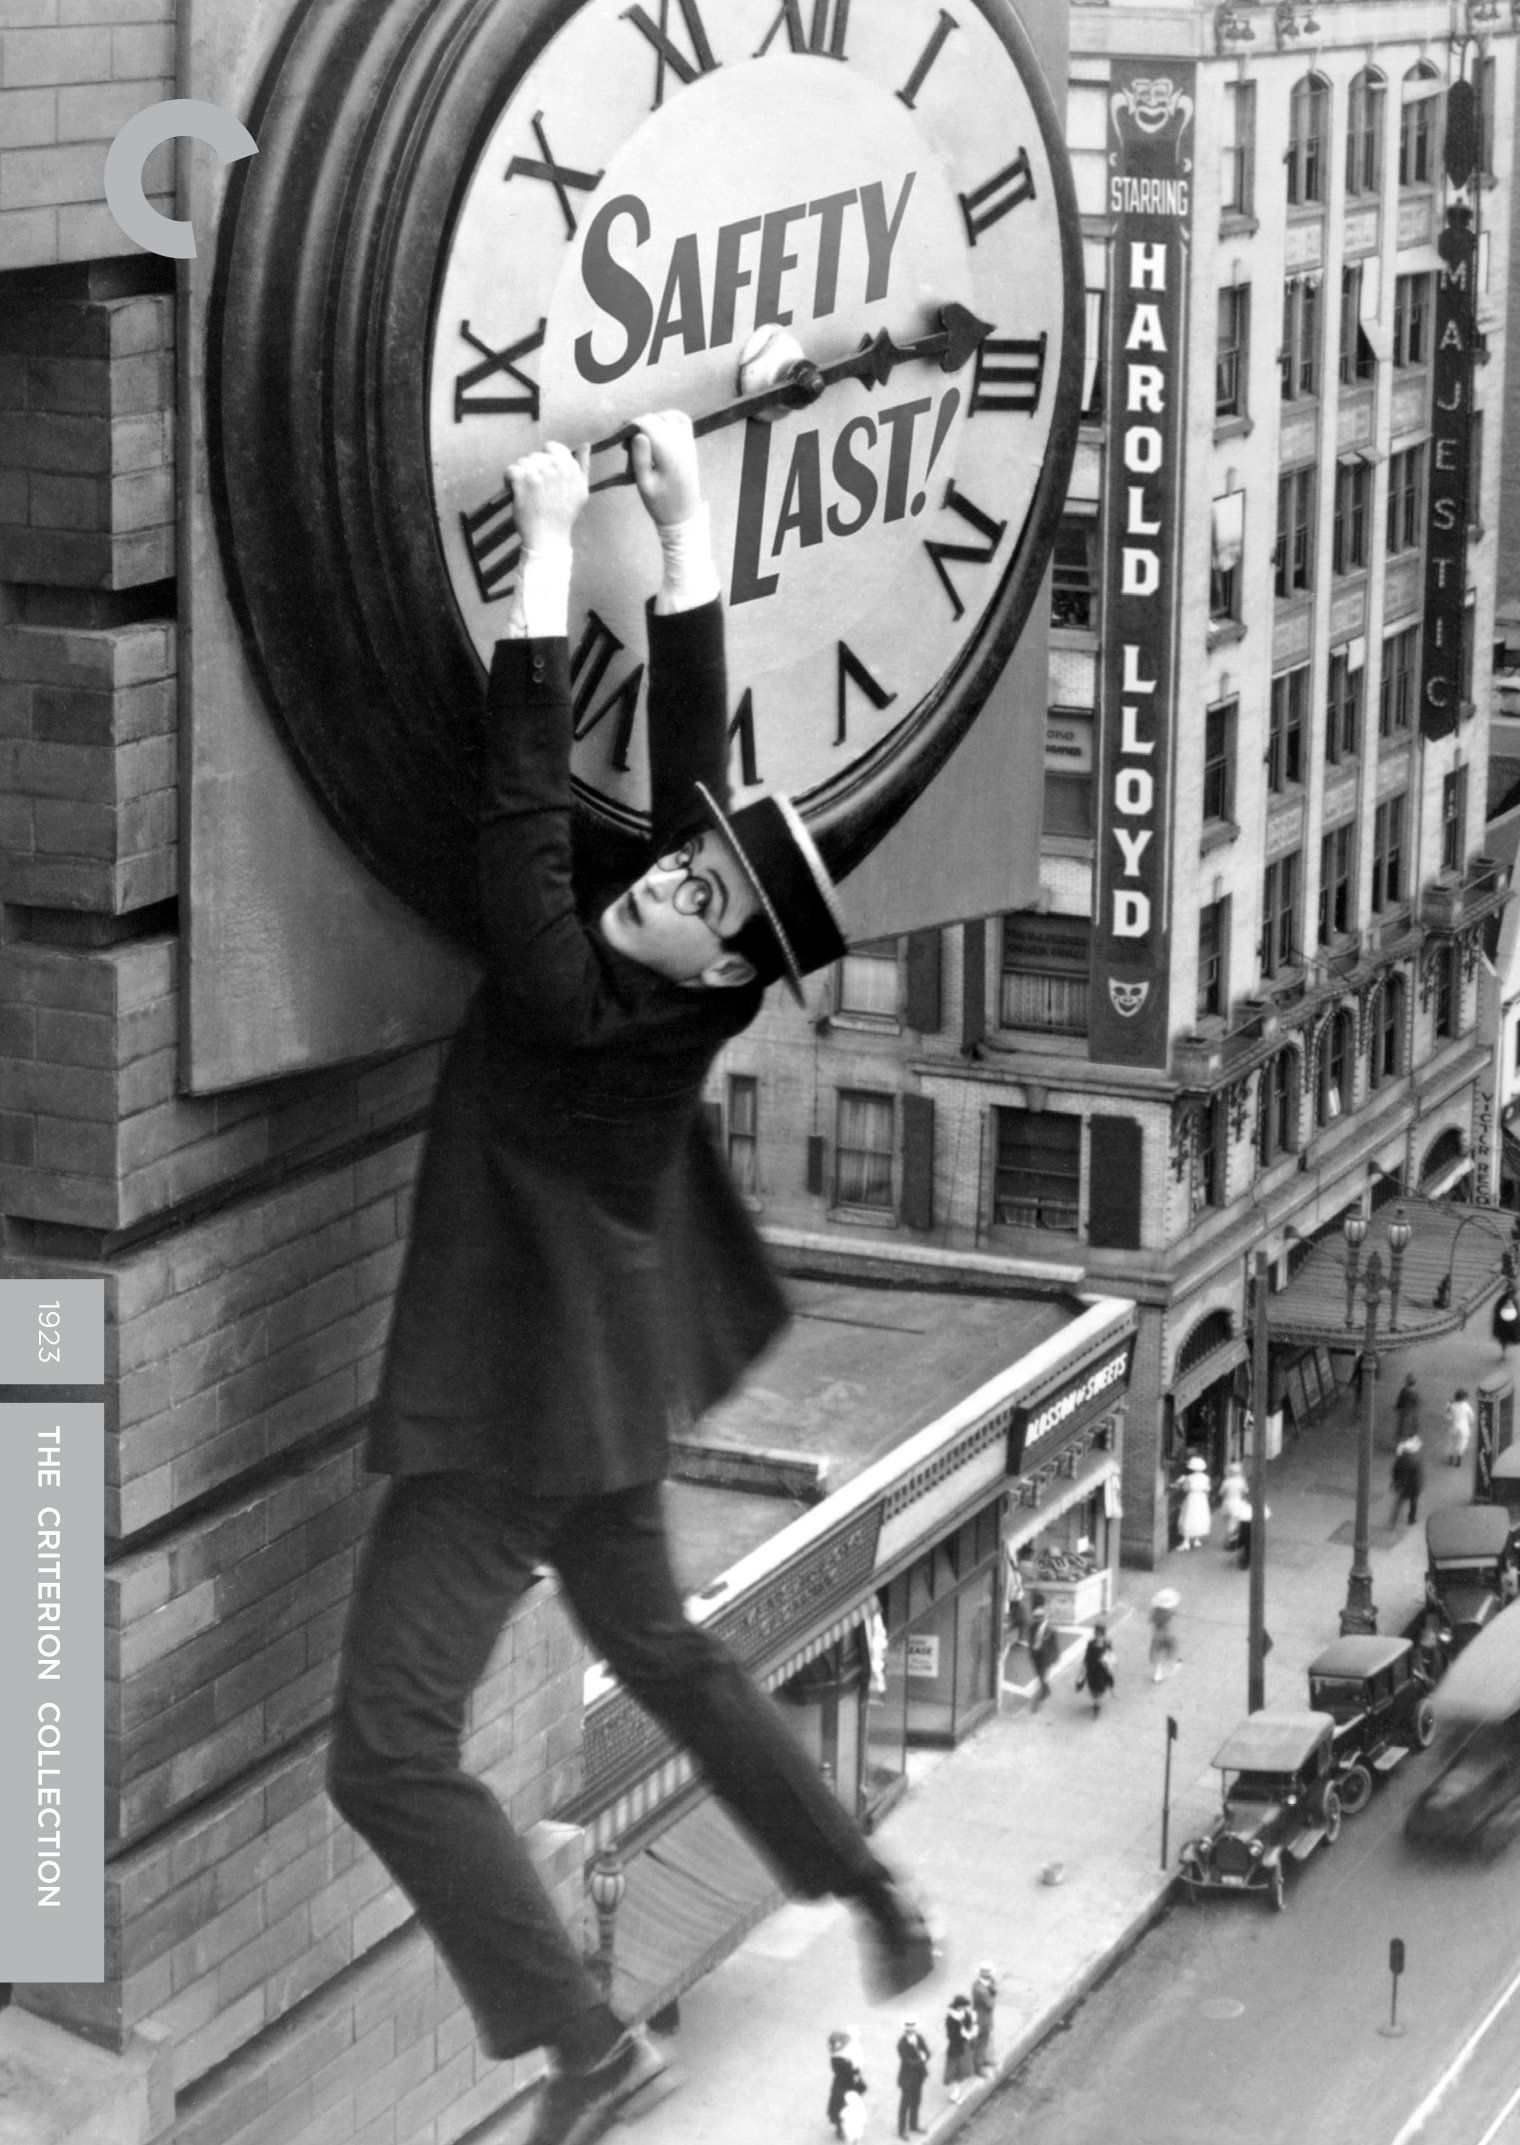 Safety Last 1923 harold lloyd one of my all time favourite